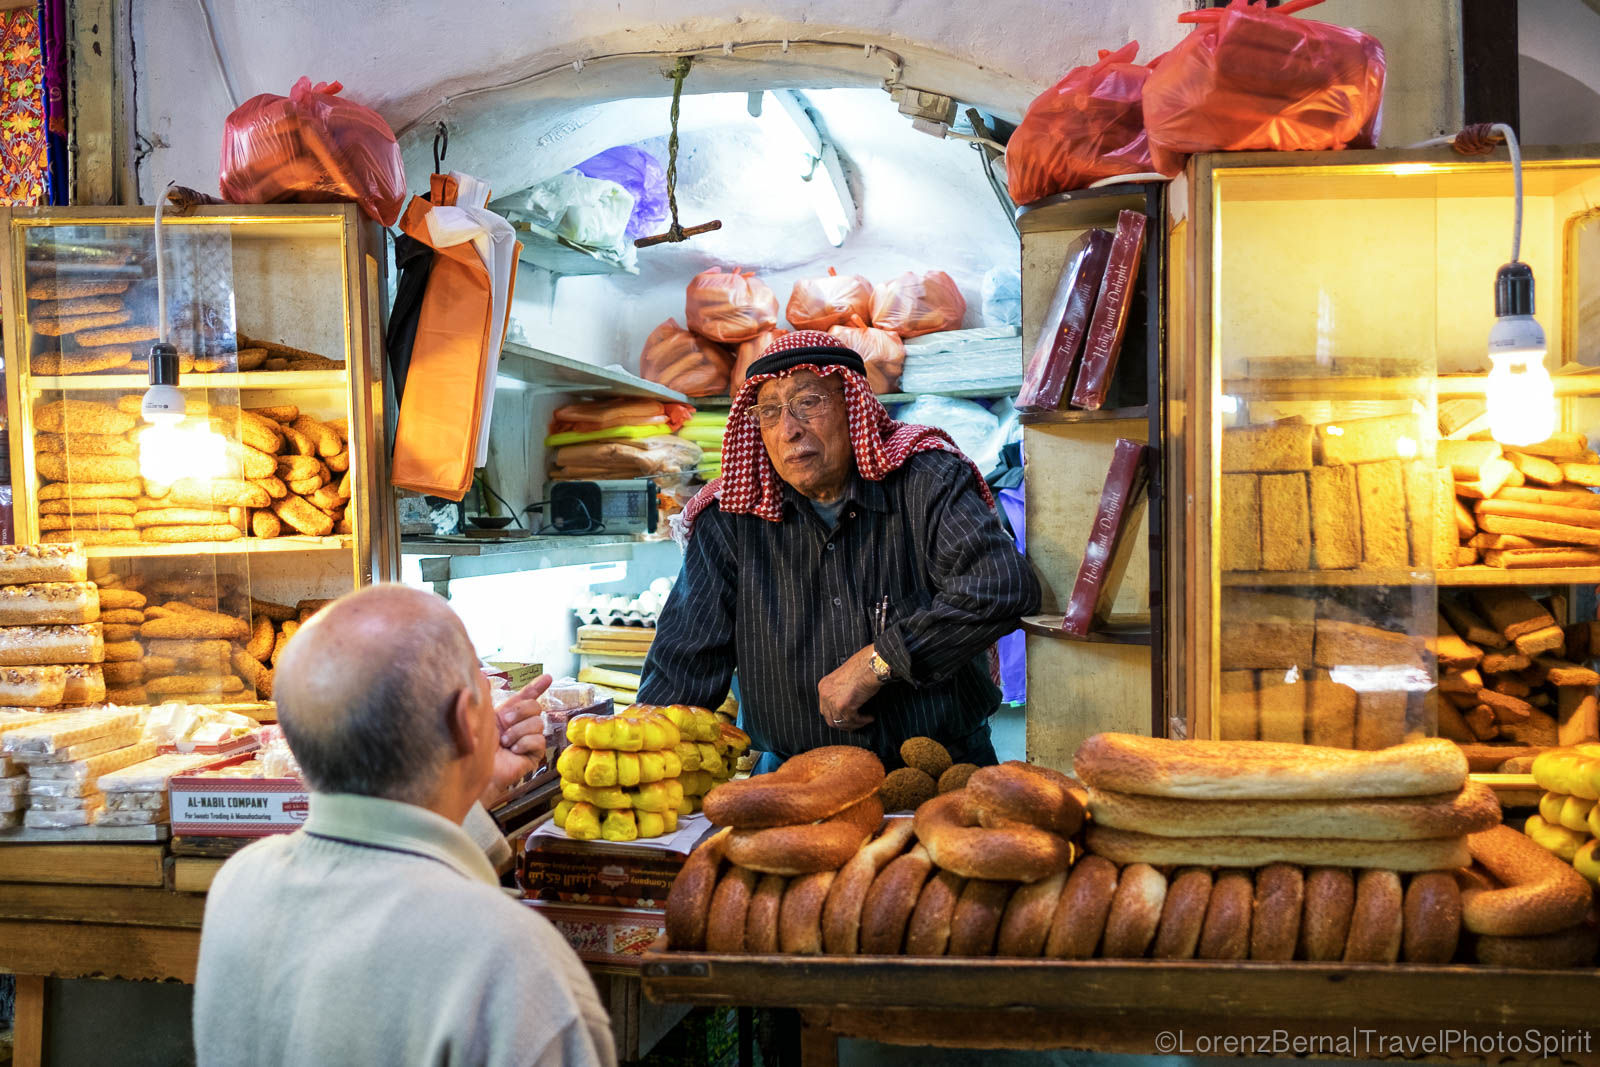 Two men talking at a local food stall in the Muslim Quarter, Jerusalem, Israel.